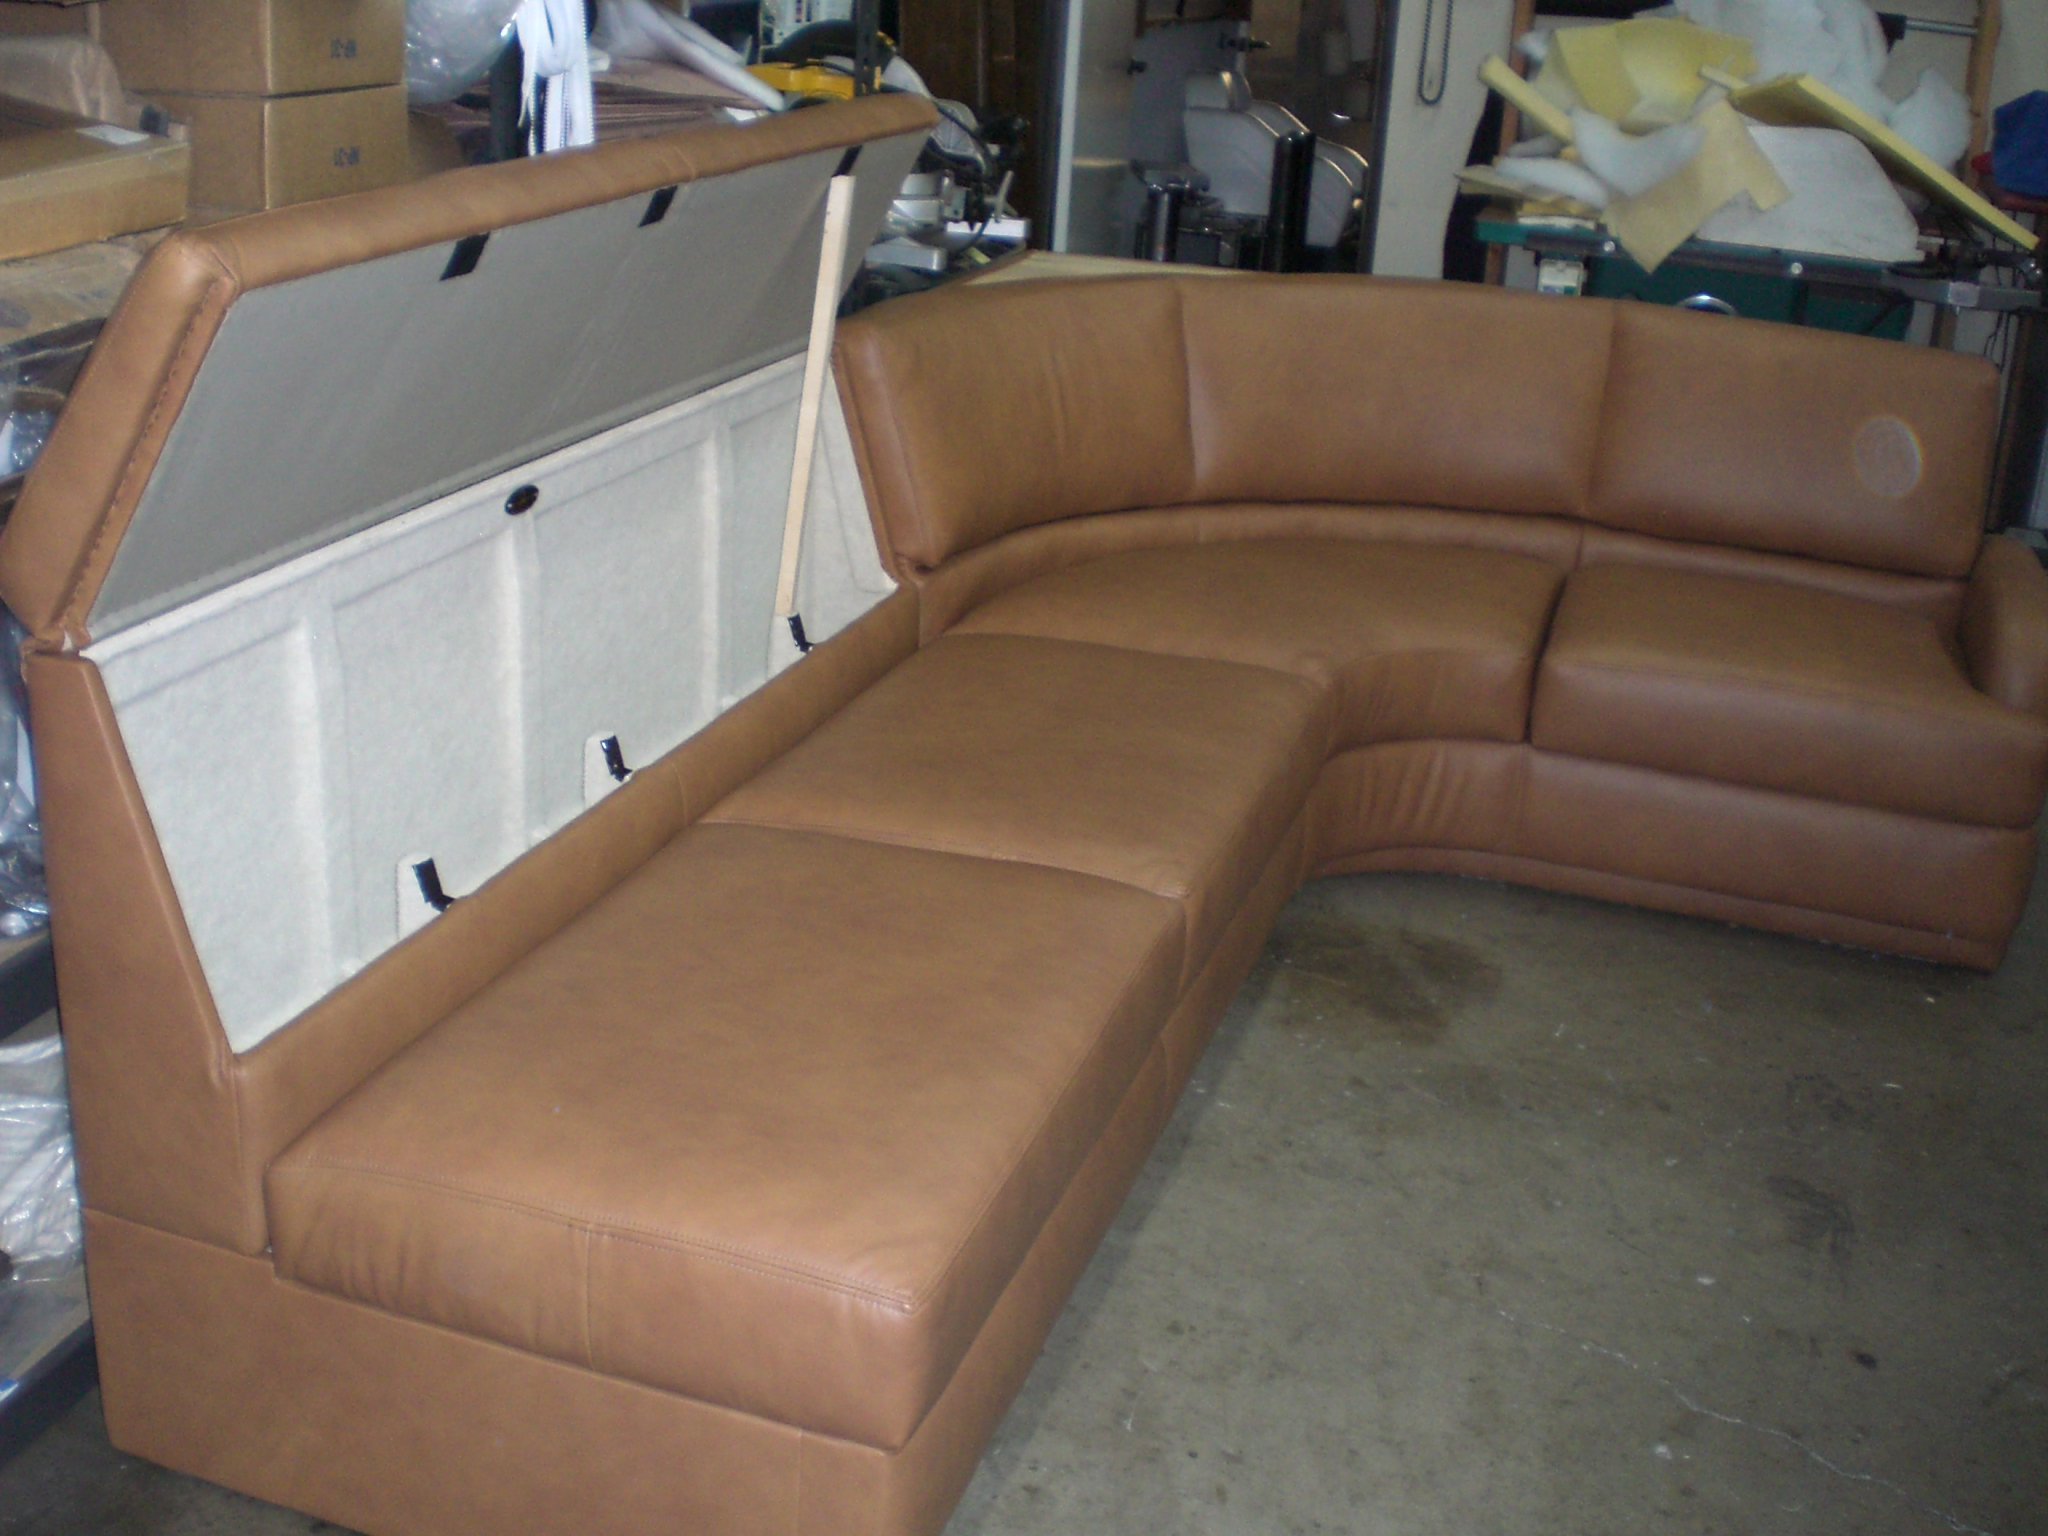 This Sofa Is Made To Be Unique Even For A Boat. The Entire Sofa Frame Has A  Storage Compartment, Under The Seat Cushions And Inside The Back Frame.